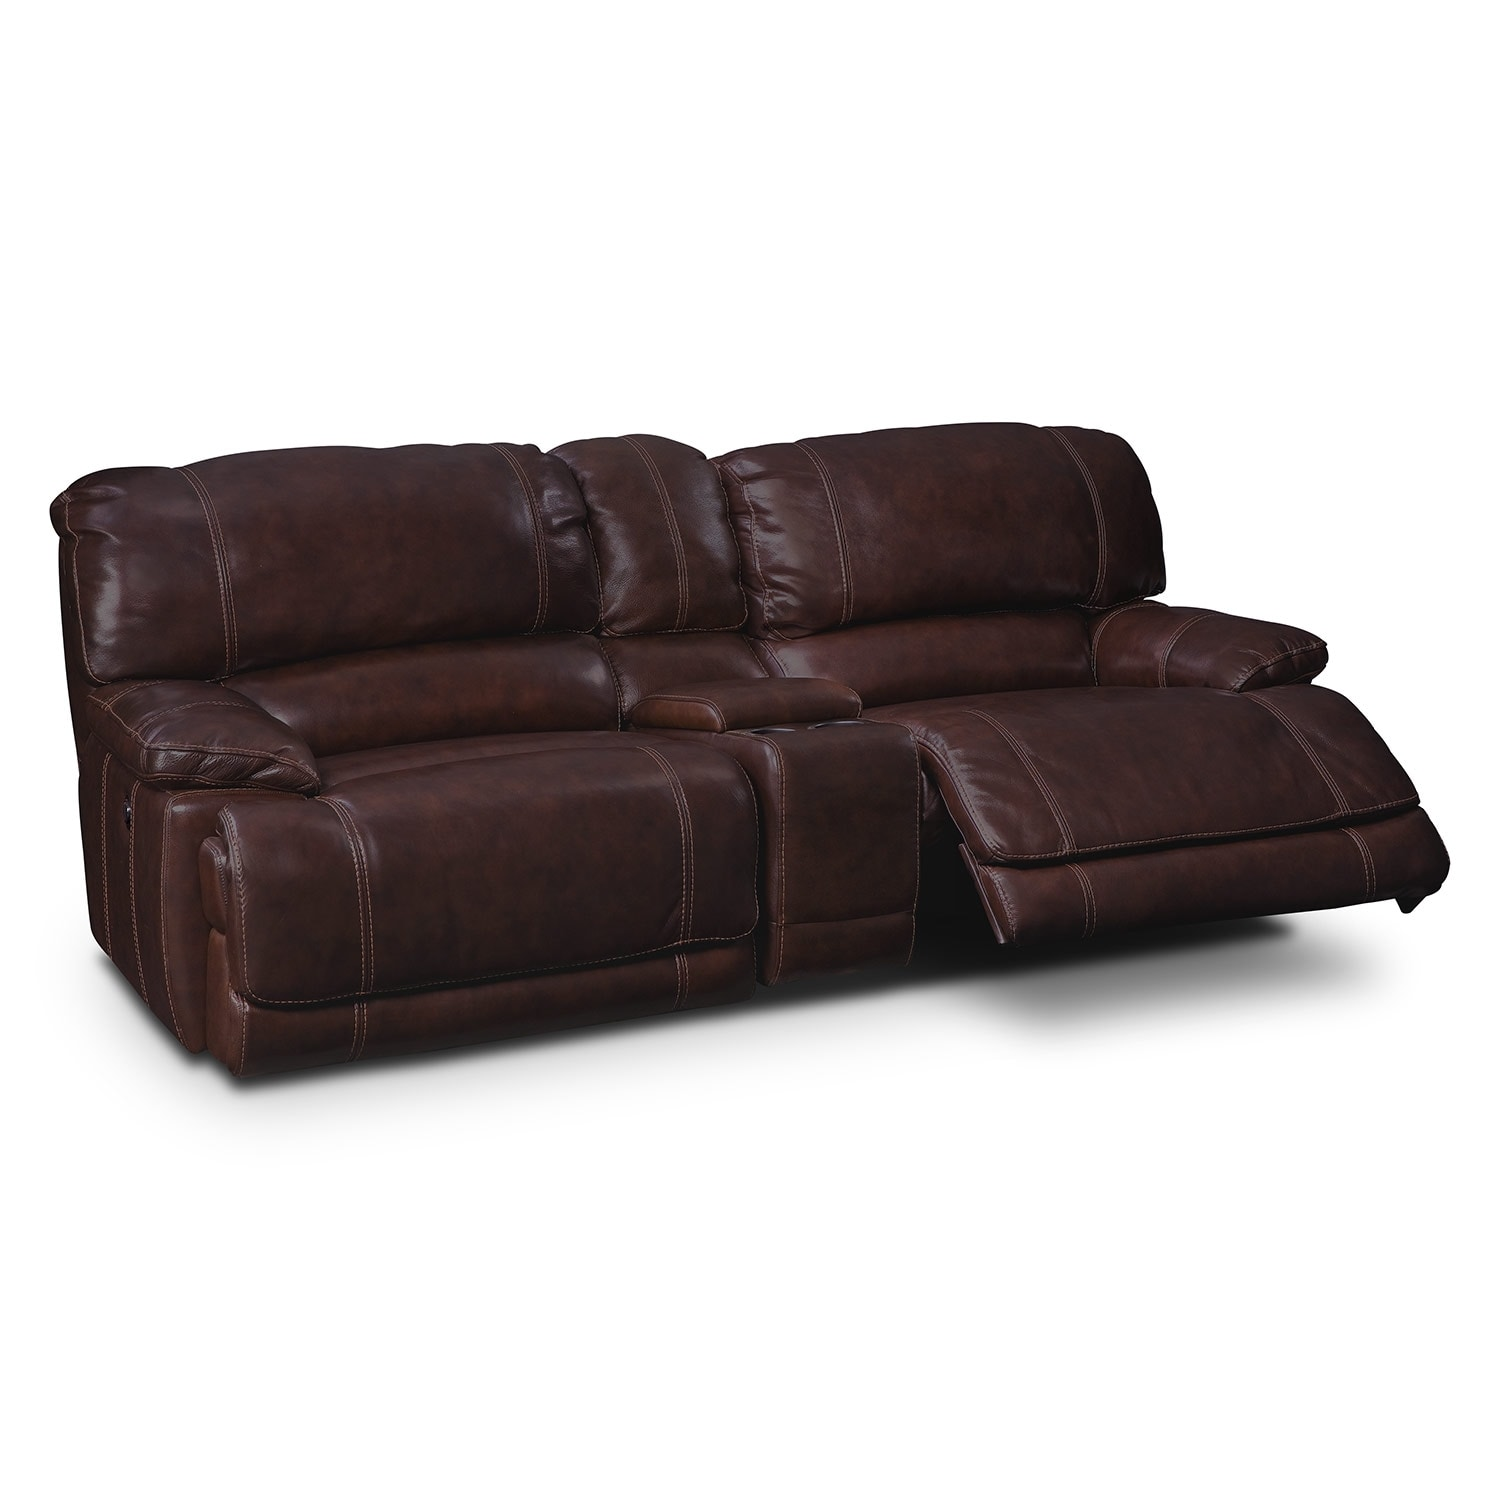 St Malo Iii Leather 3 Pc Power Reclining Sofa With Console Value City Furniture